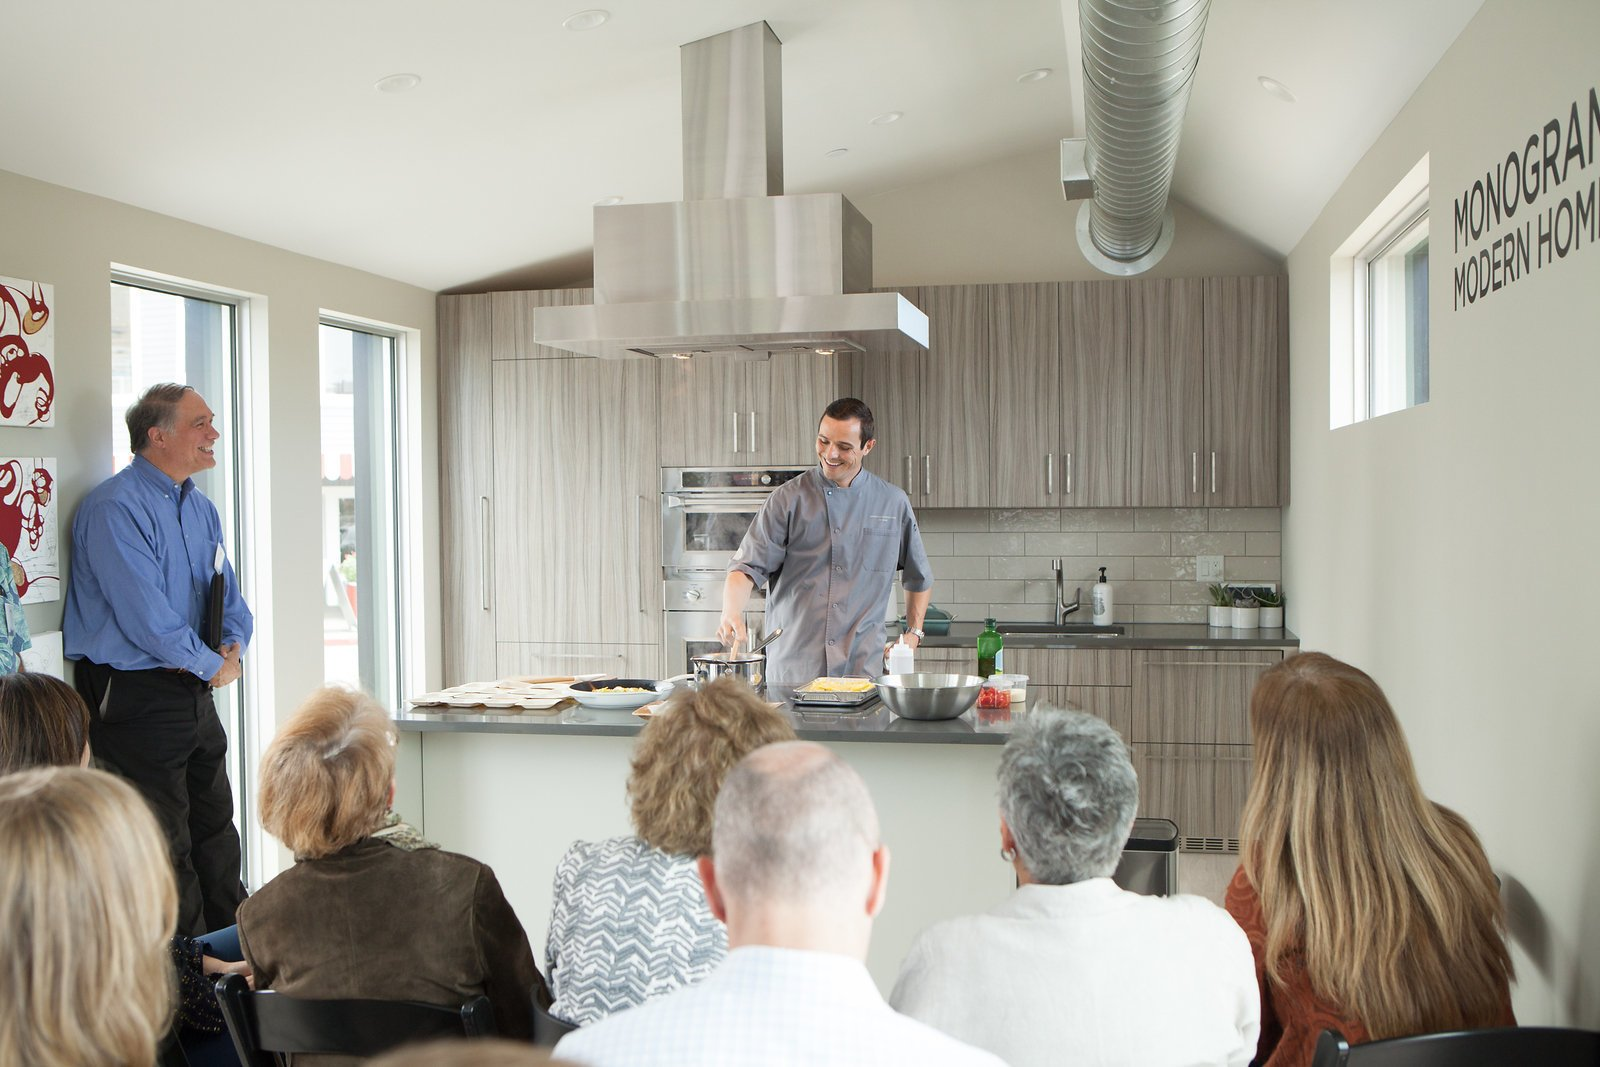 Live product demonstrations led by tour chef Jon provided a way for visitors to learn about Monogram's offerings in a relaxed, organic environment.  Photo 6 of 9 in Monogram Modern Home Tour Takes On the West Coast